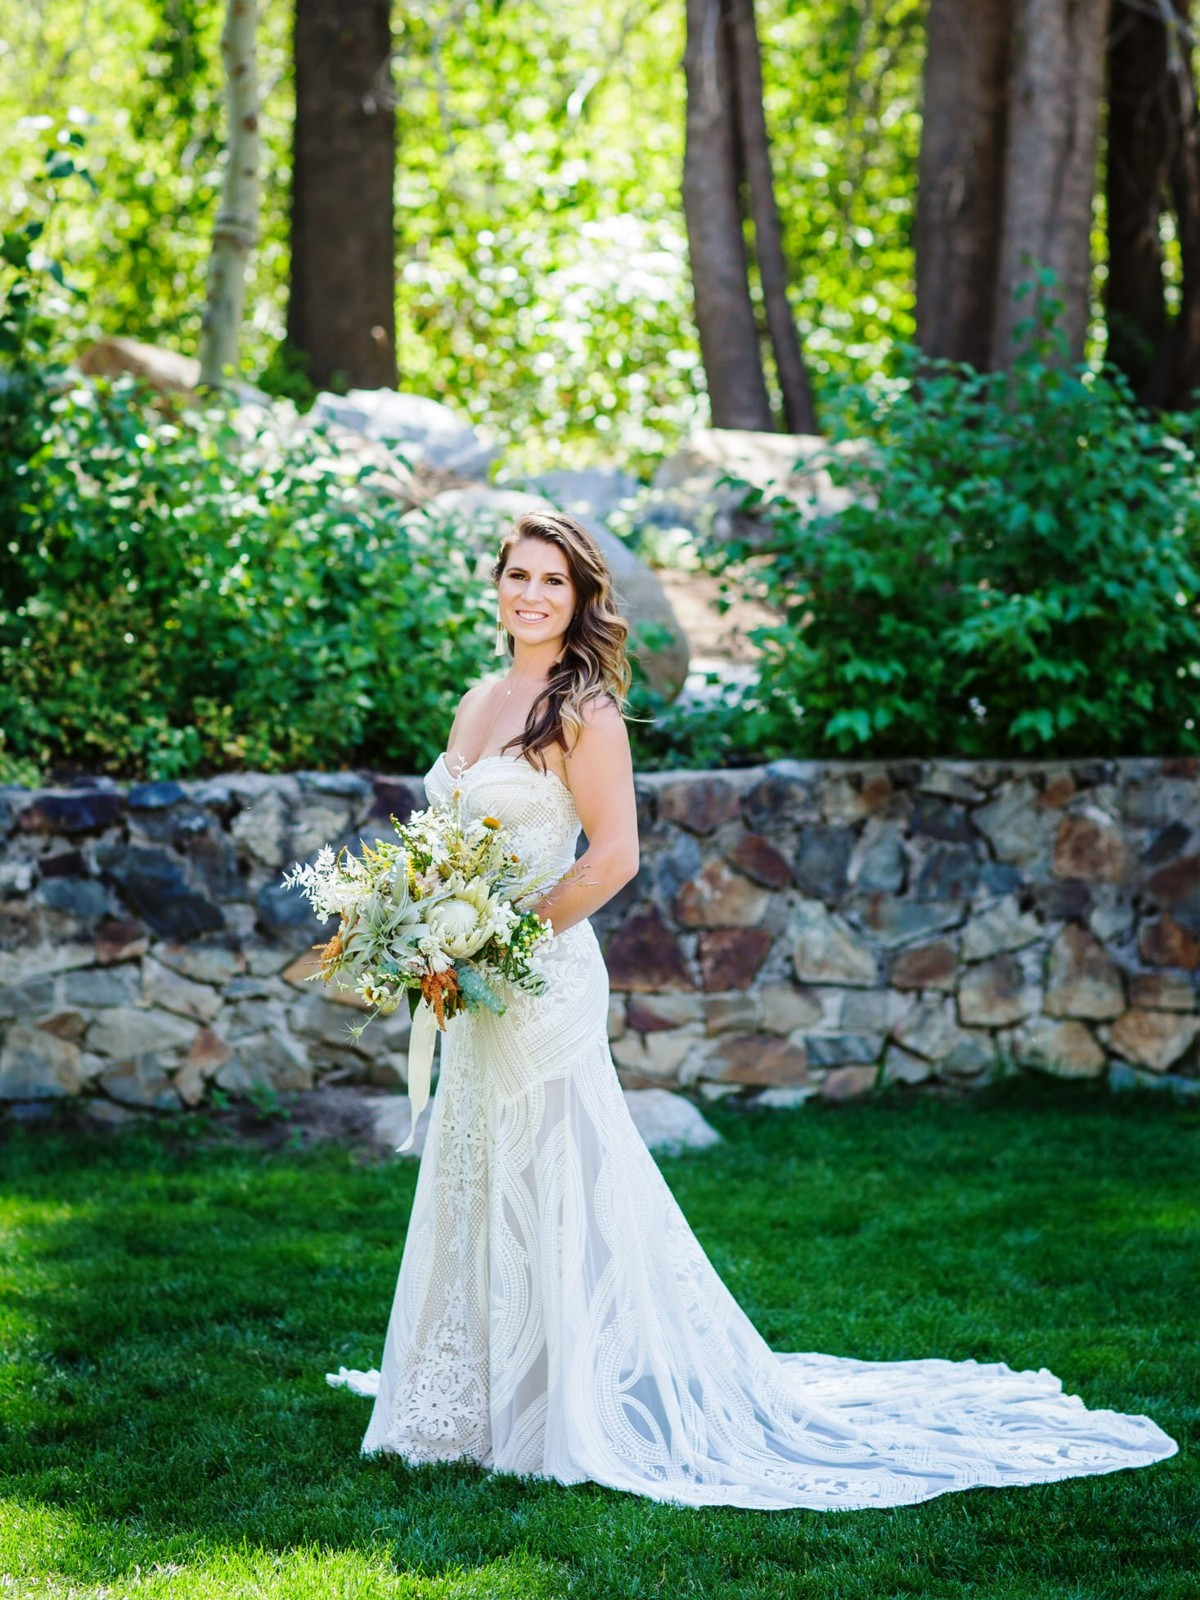 Nancy Rice Artistry - Lake Tahoe wedding hair & makeup - bride ready for ceremony